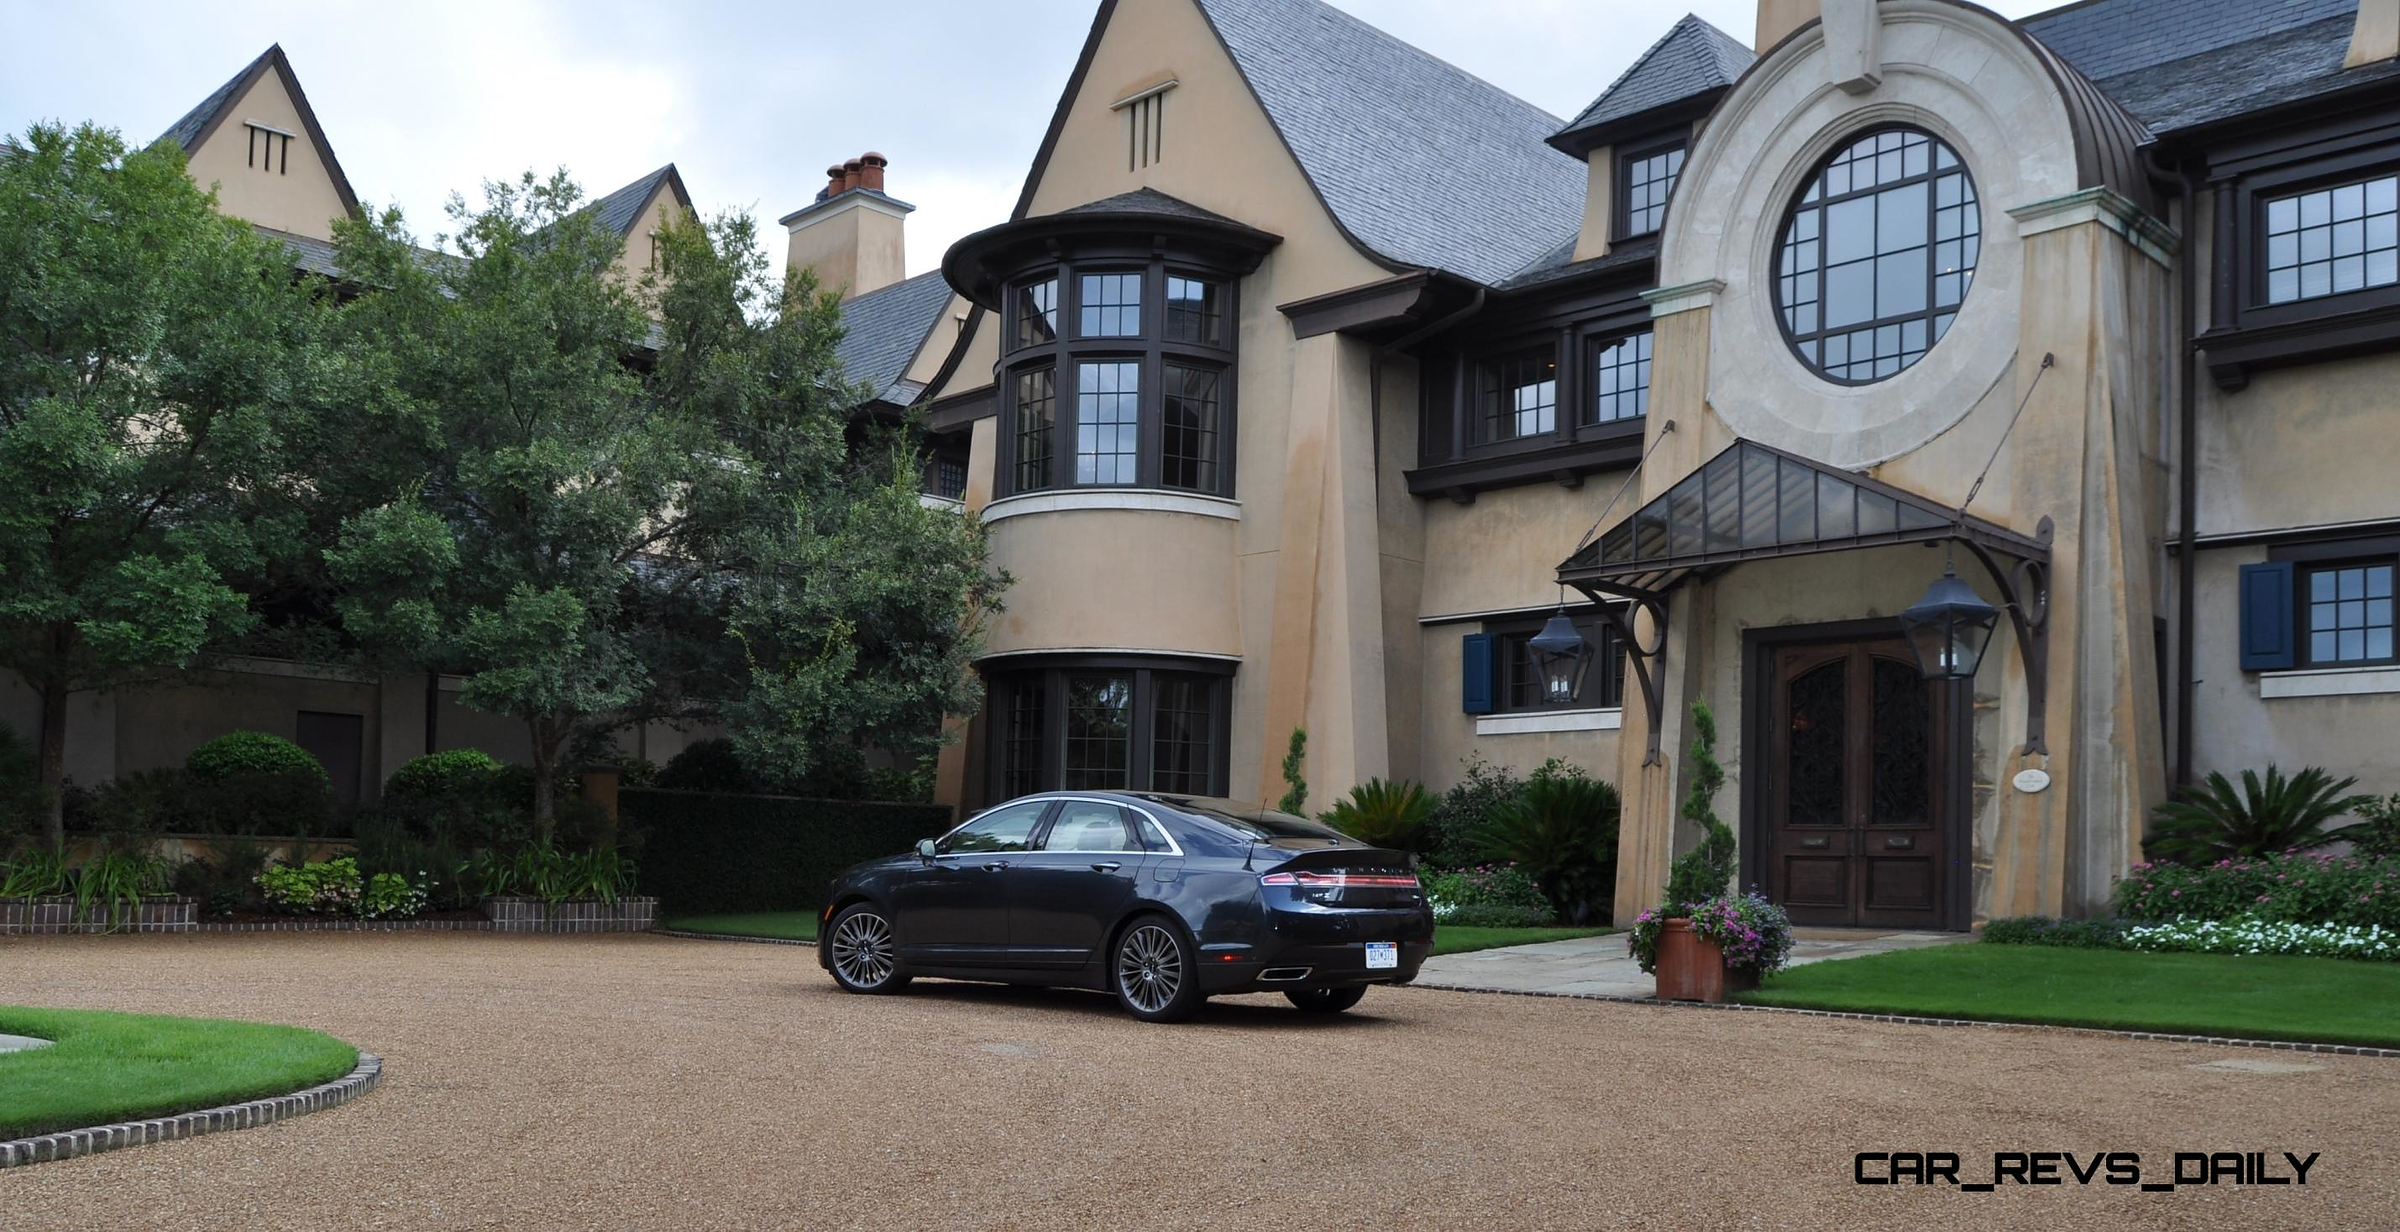 Road Test Review – 2014 Lincoln MKZ 3.7 AWD Is Stylish, Sporty and